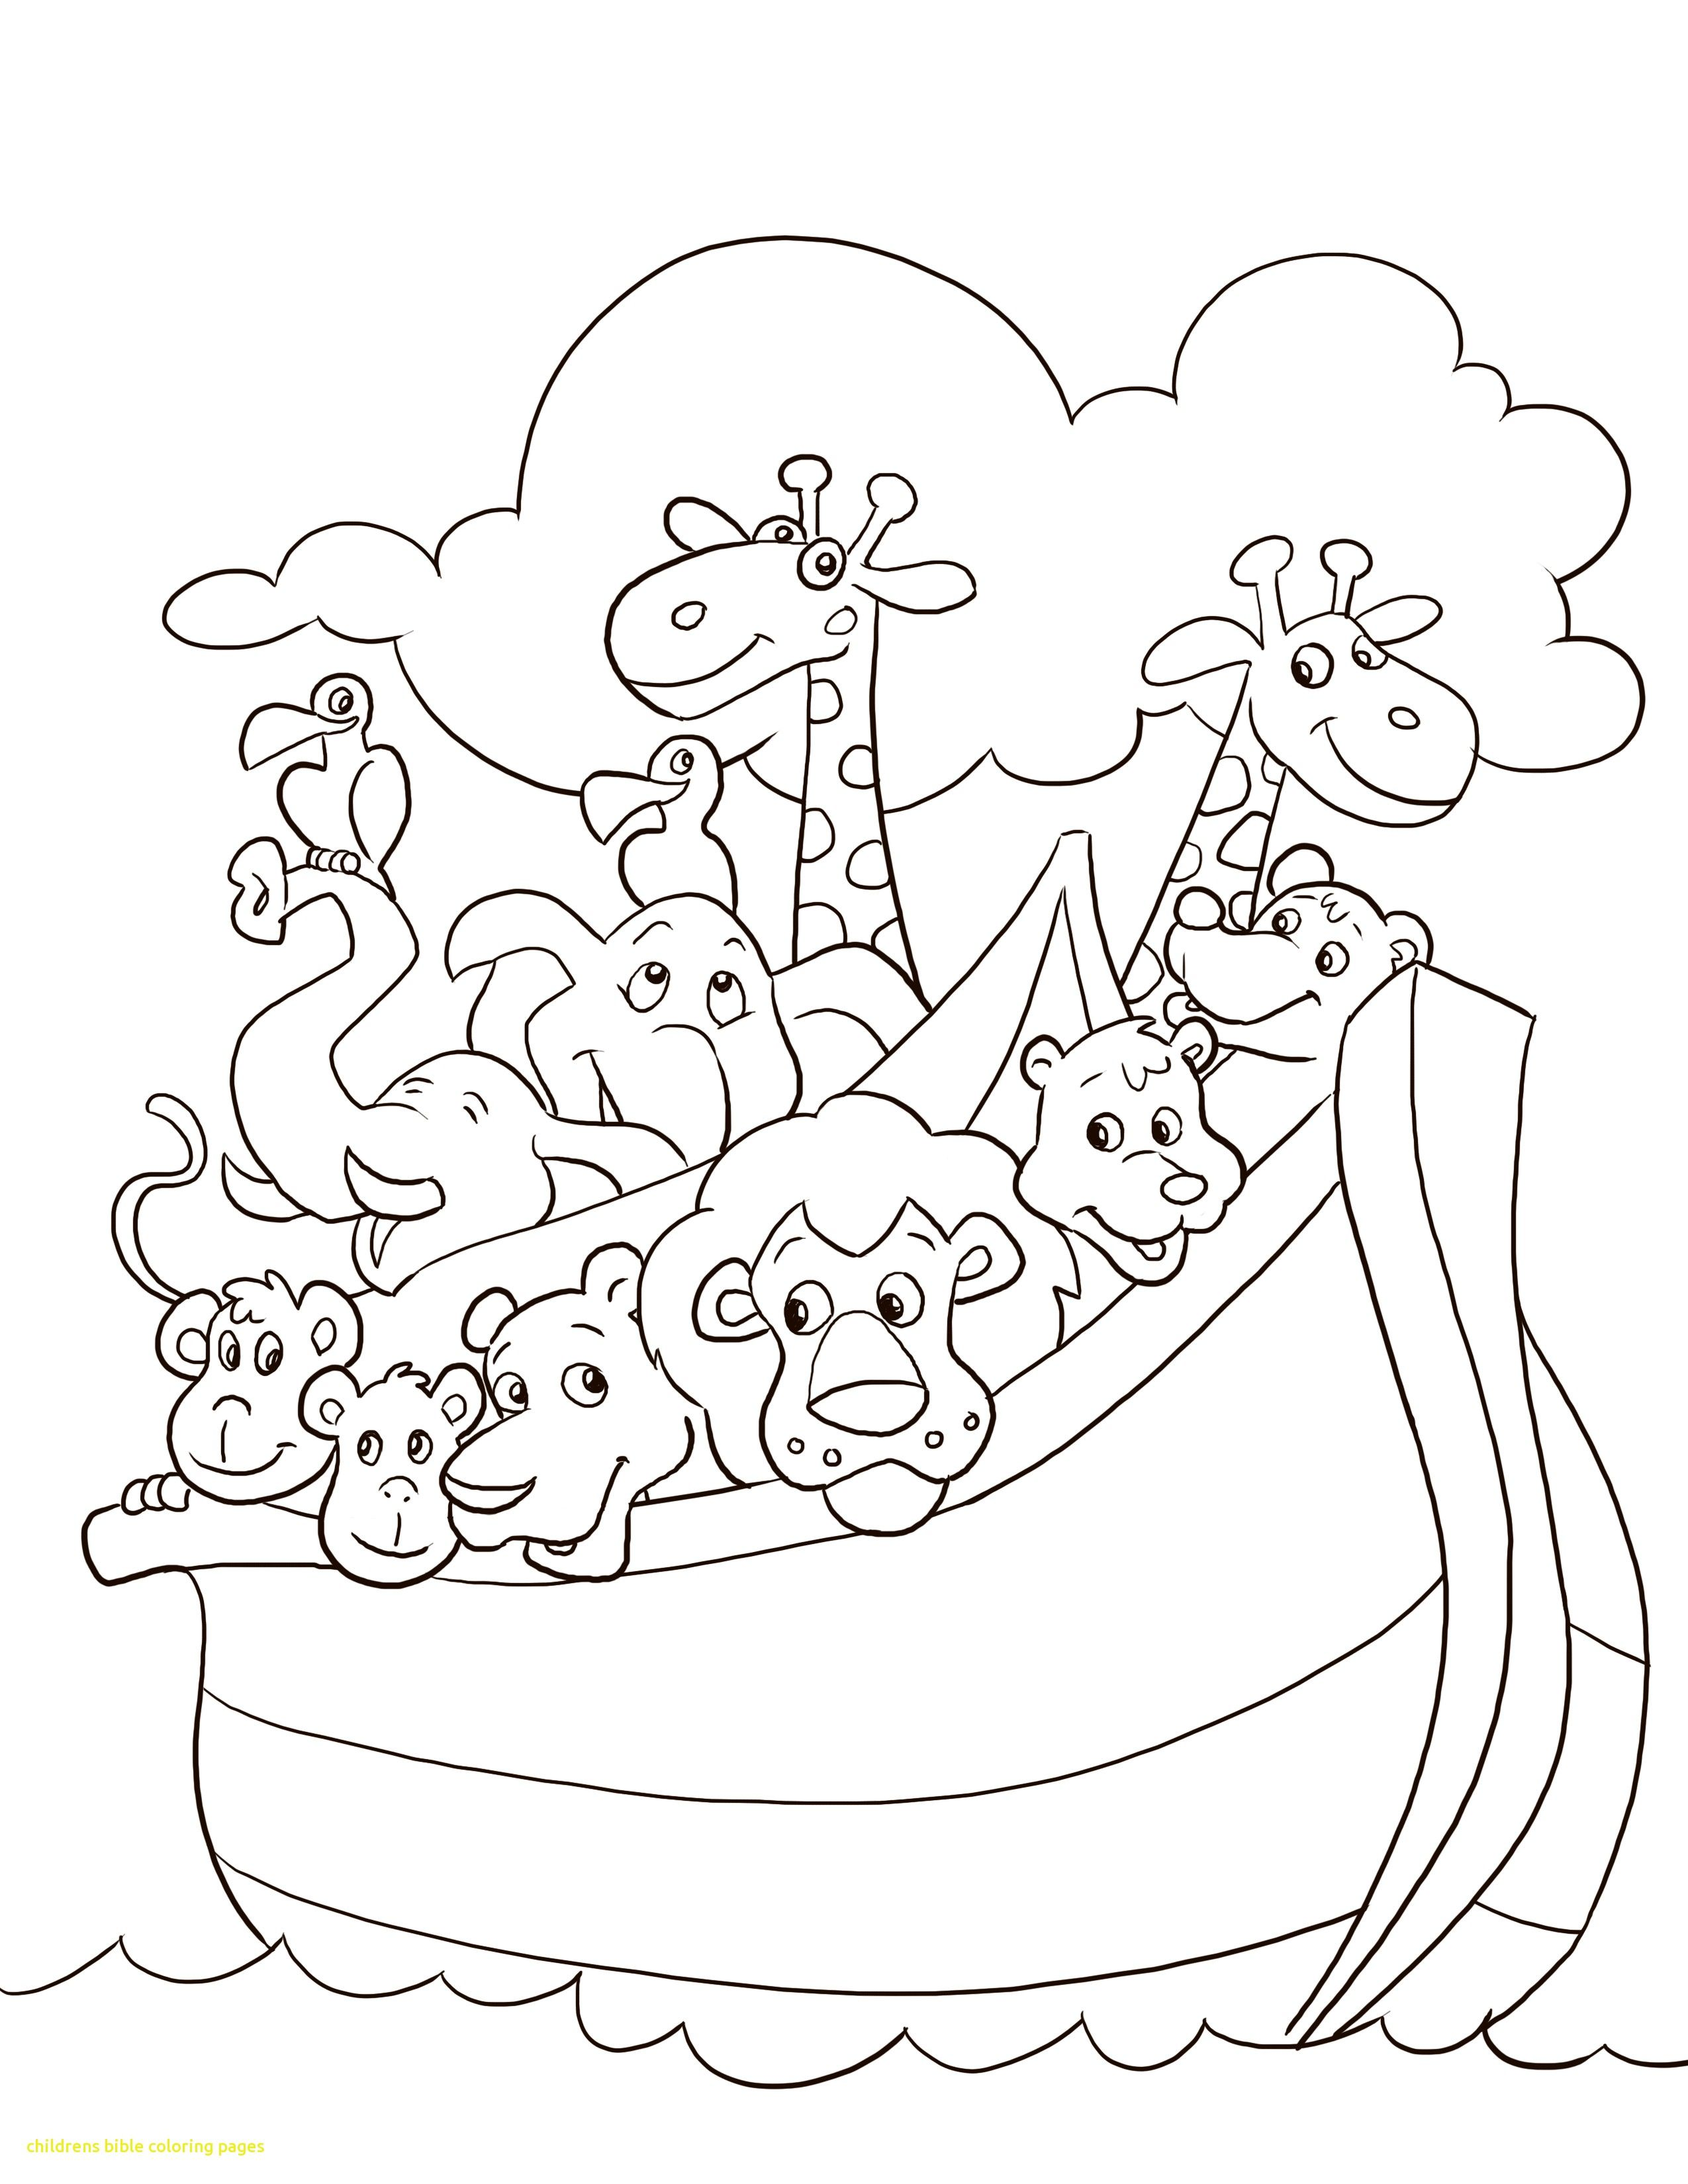 2550x3300 Childrens Bible Coloring